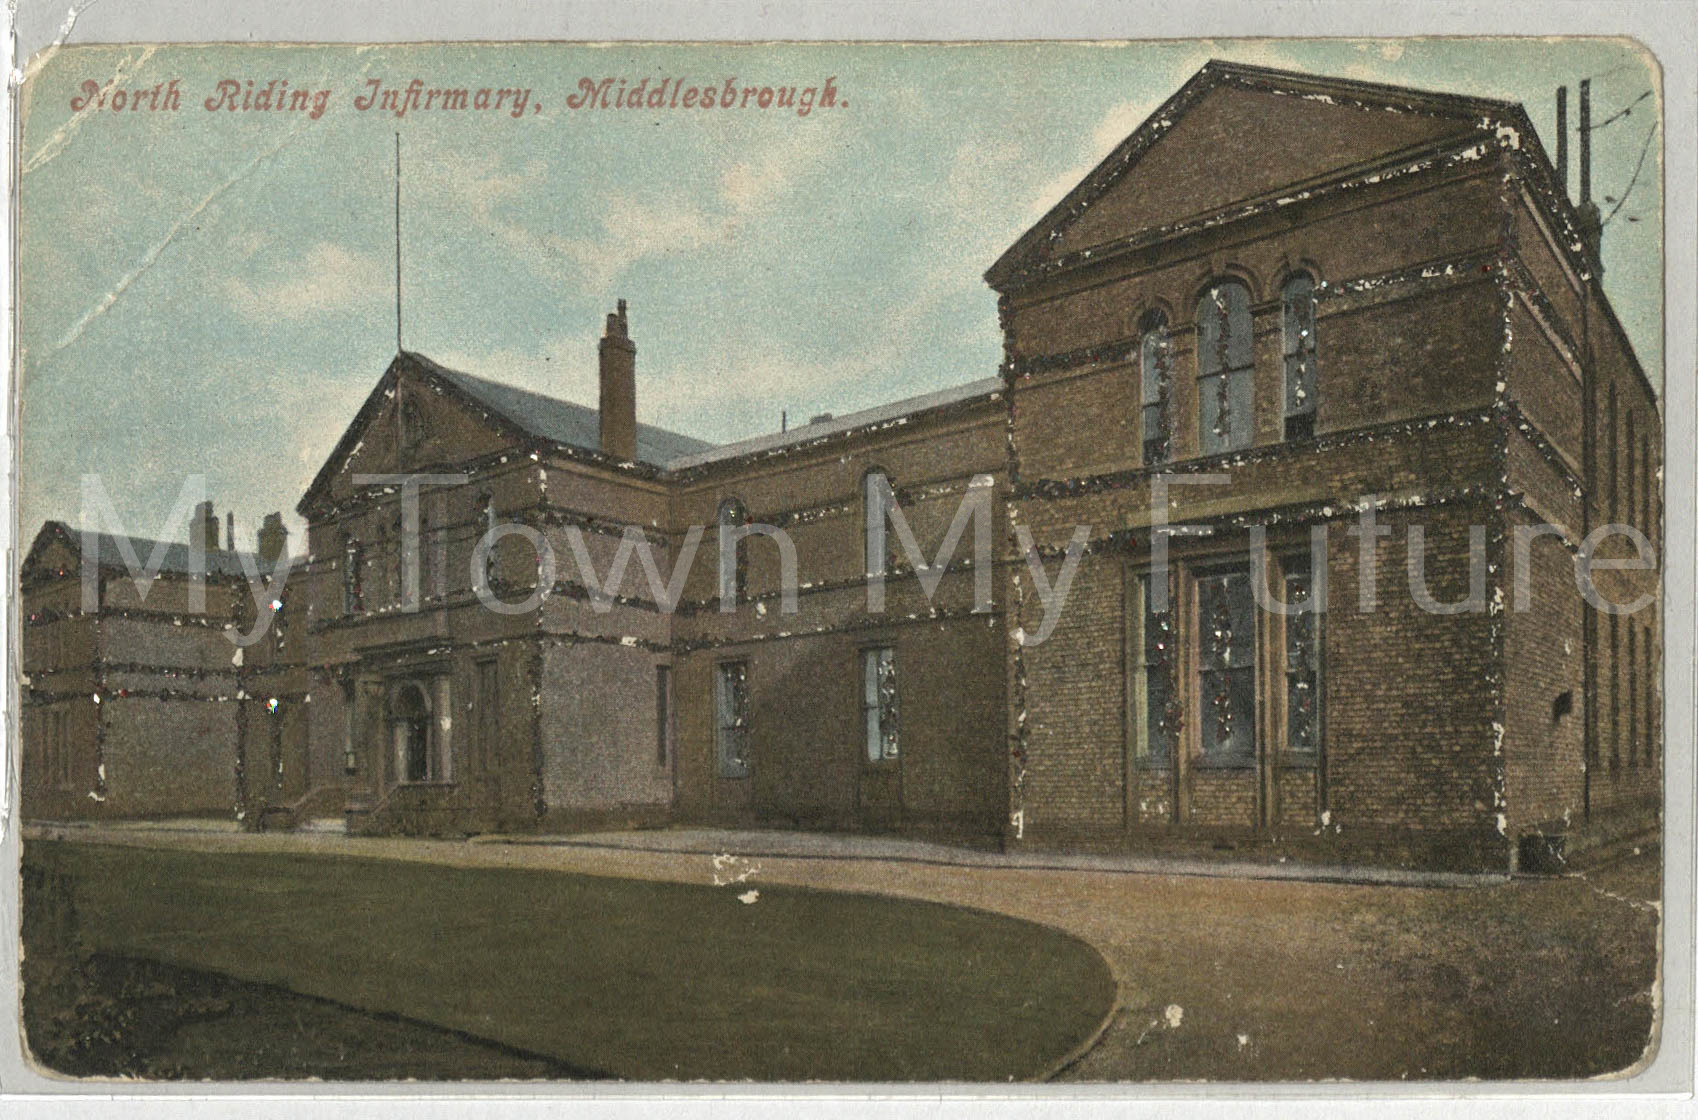 Middlesbrough North Riding Infirmary